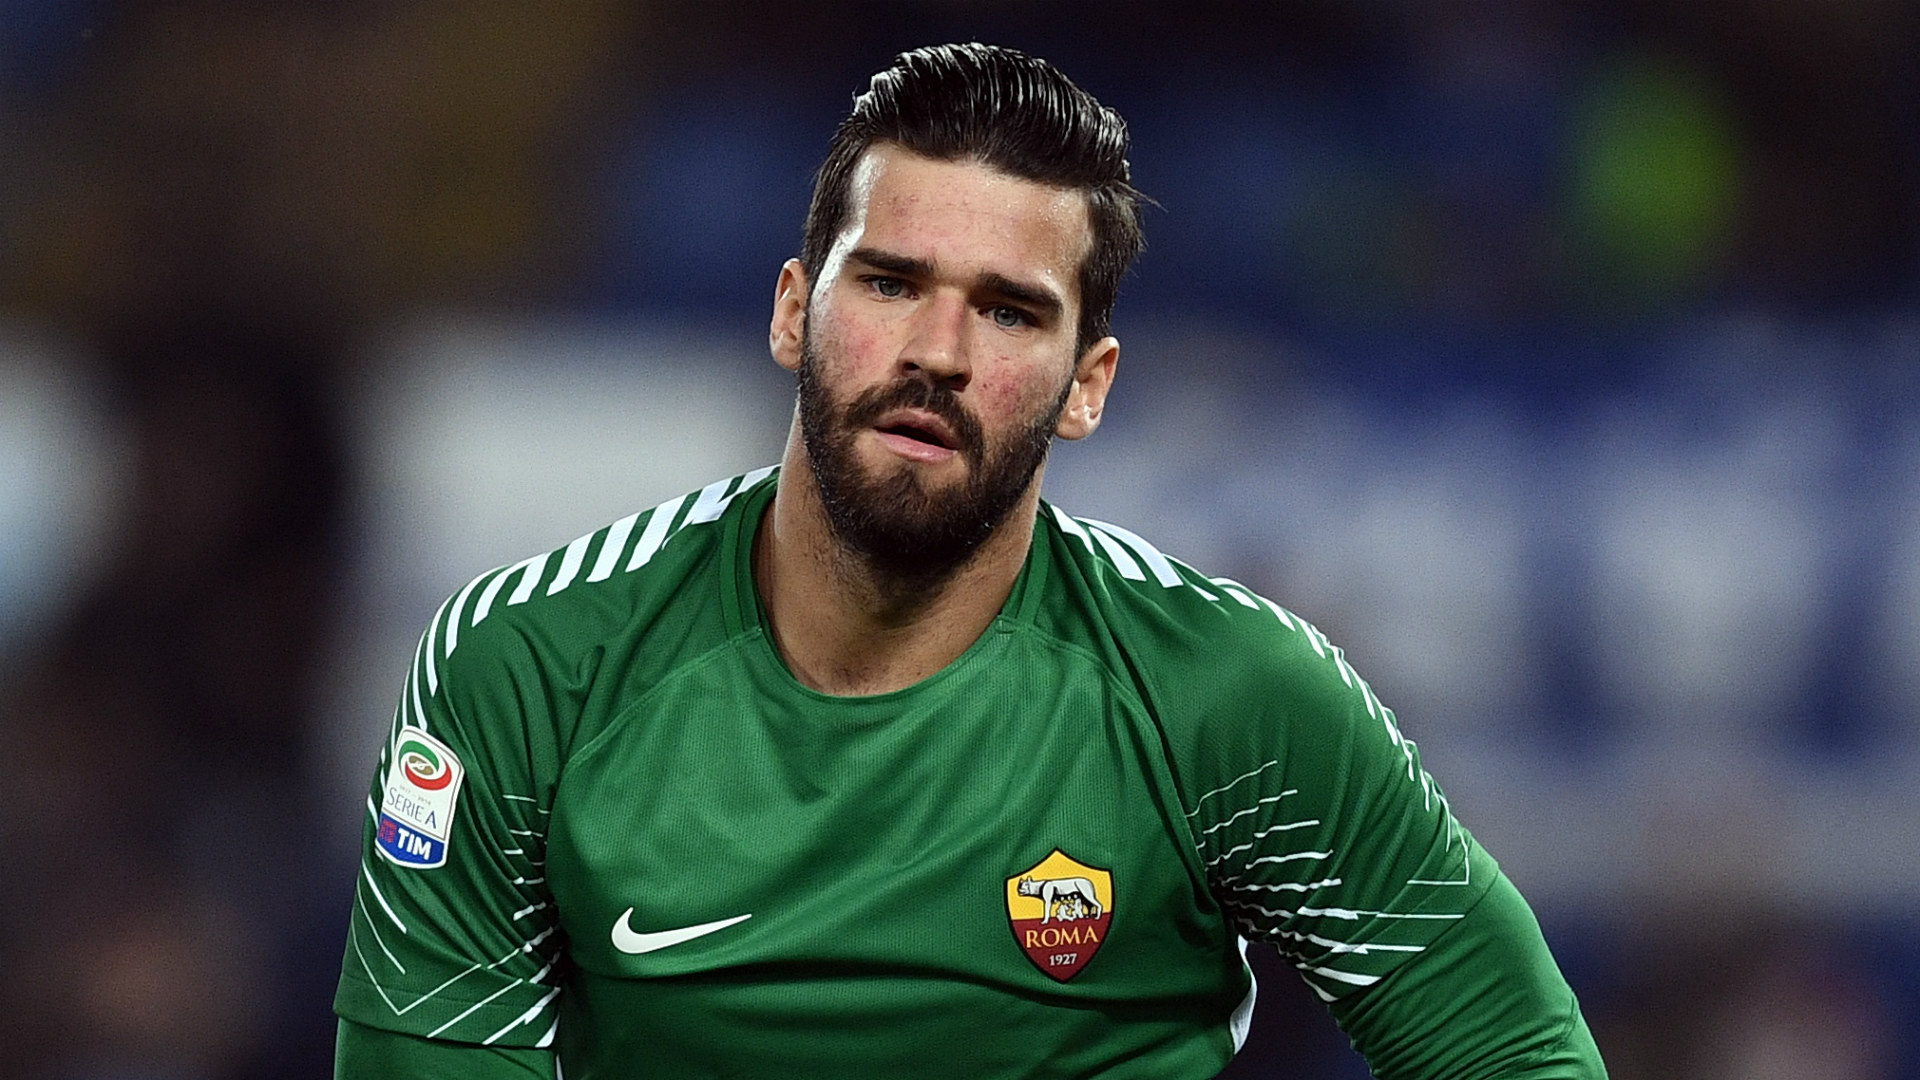 Liverpool &Real Madrid told 'sack of money' won't lure Alisson from Roma